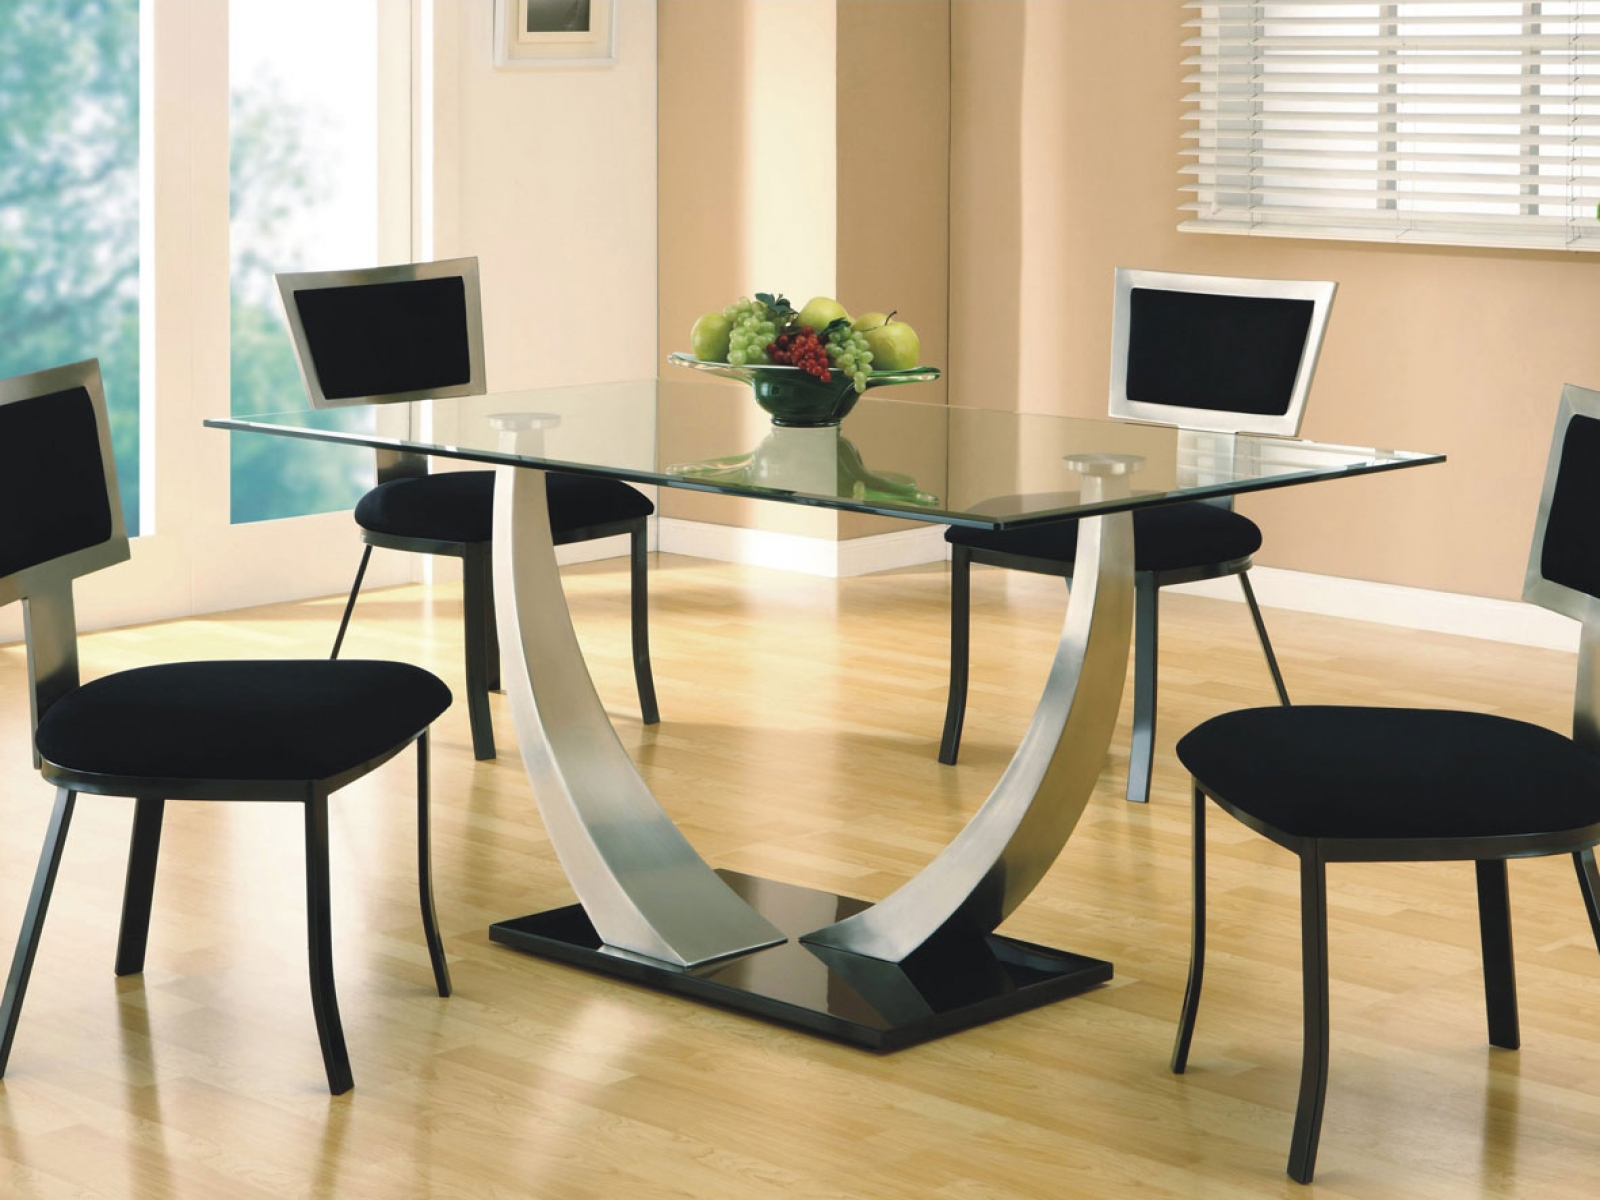 Square dining table design for your home d cor for Glass dining table designs